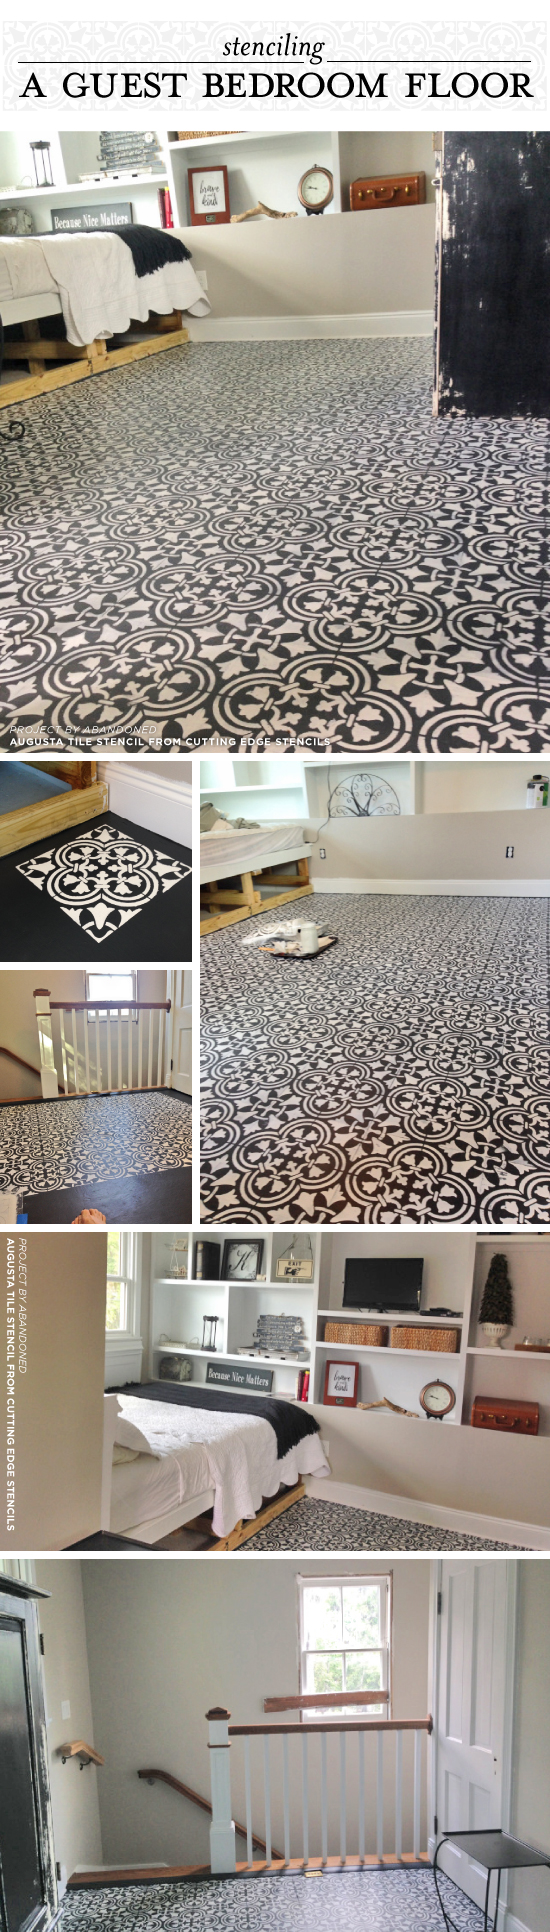 stenciling a guest bedroom floor with a tile pattern stencil stories cutting edge stencils shares a diy guest bedroom makeover with a stenciled plywood floor using the